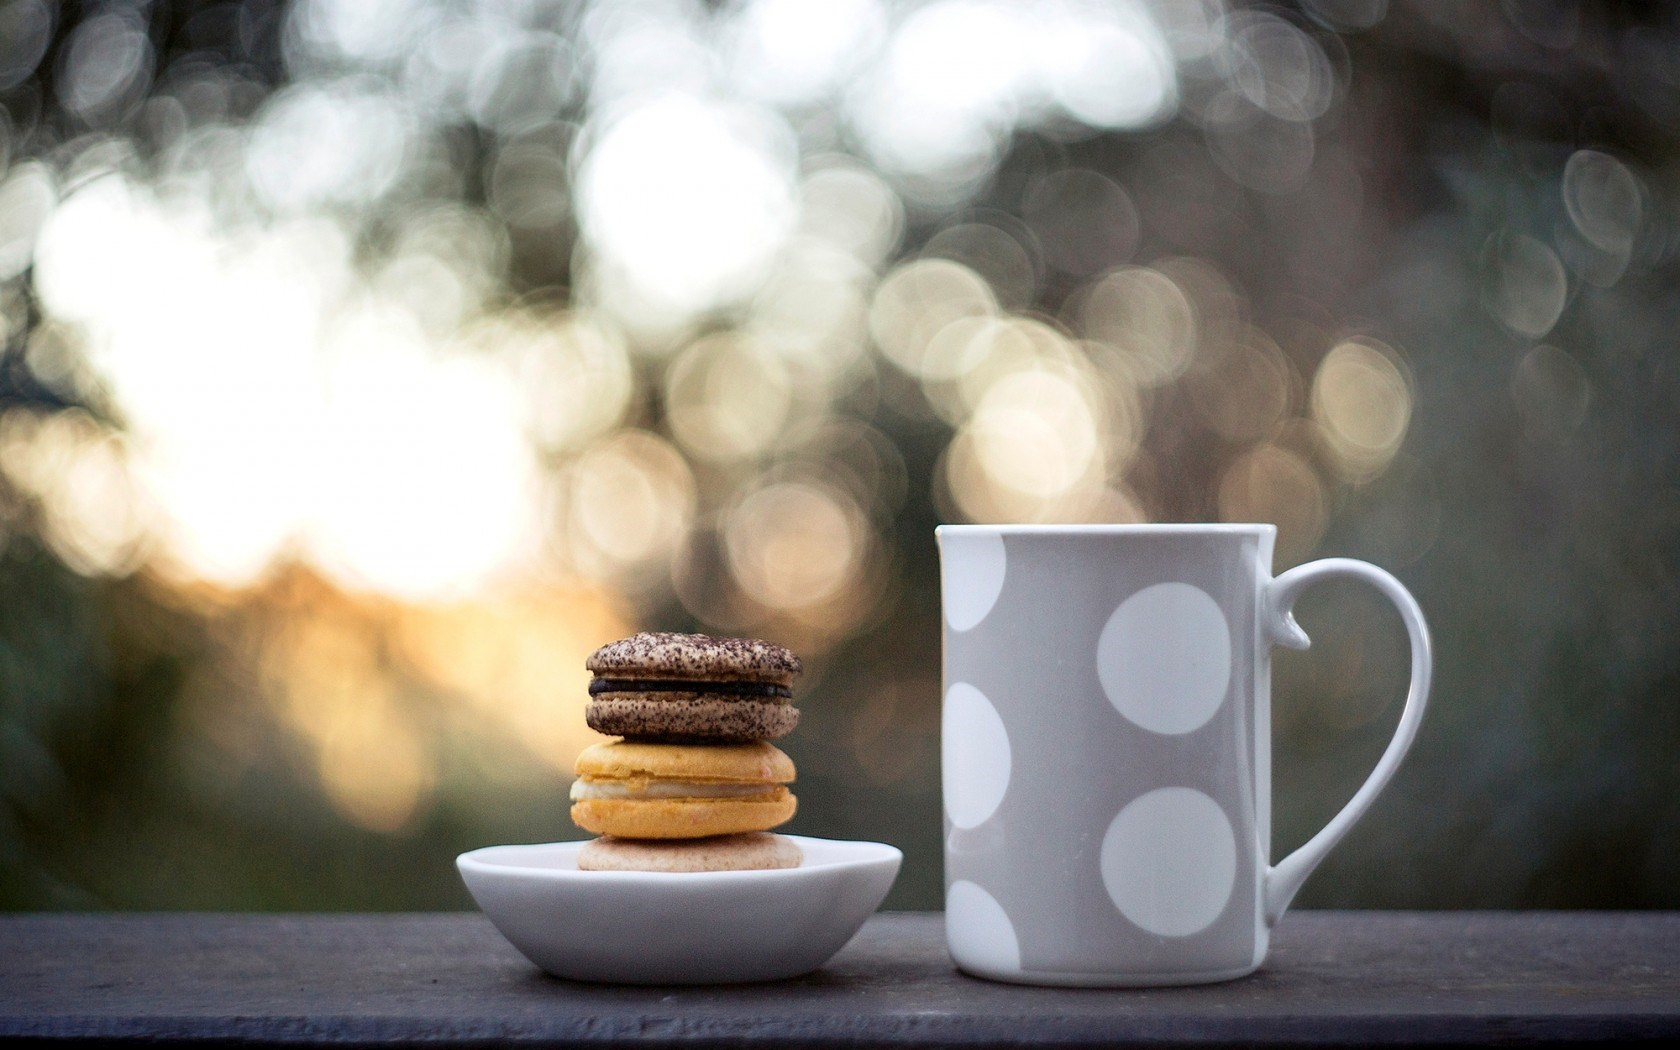 Cute Coffee Wallpaper Hd Cookies Picture Wallpaper High Definition High Quality